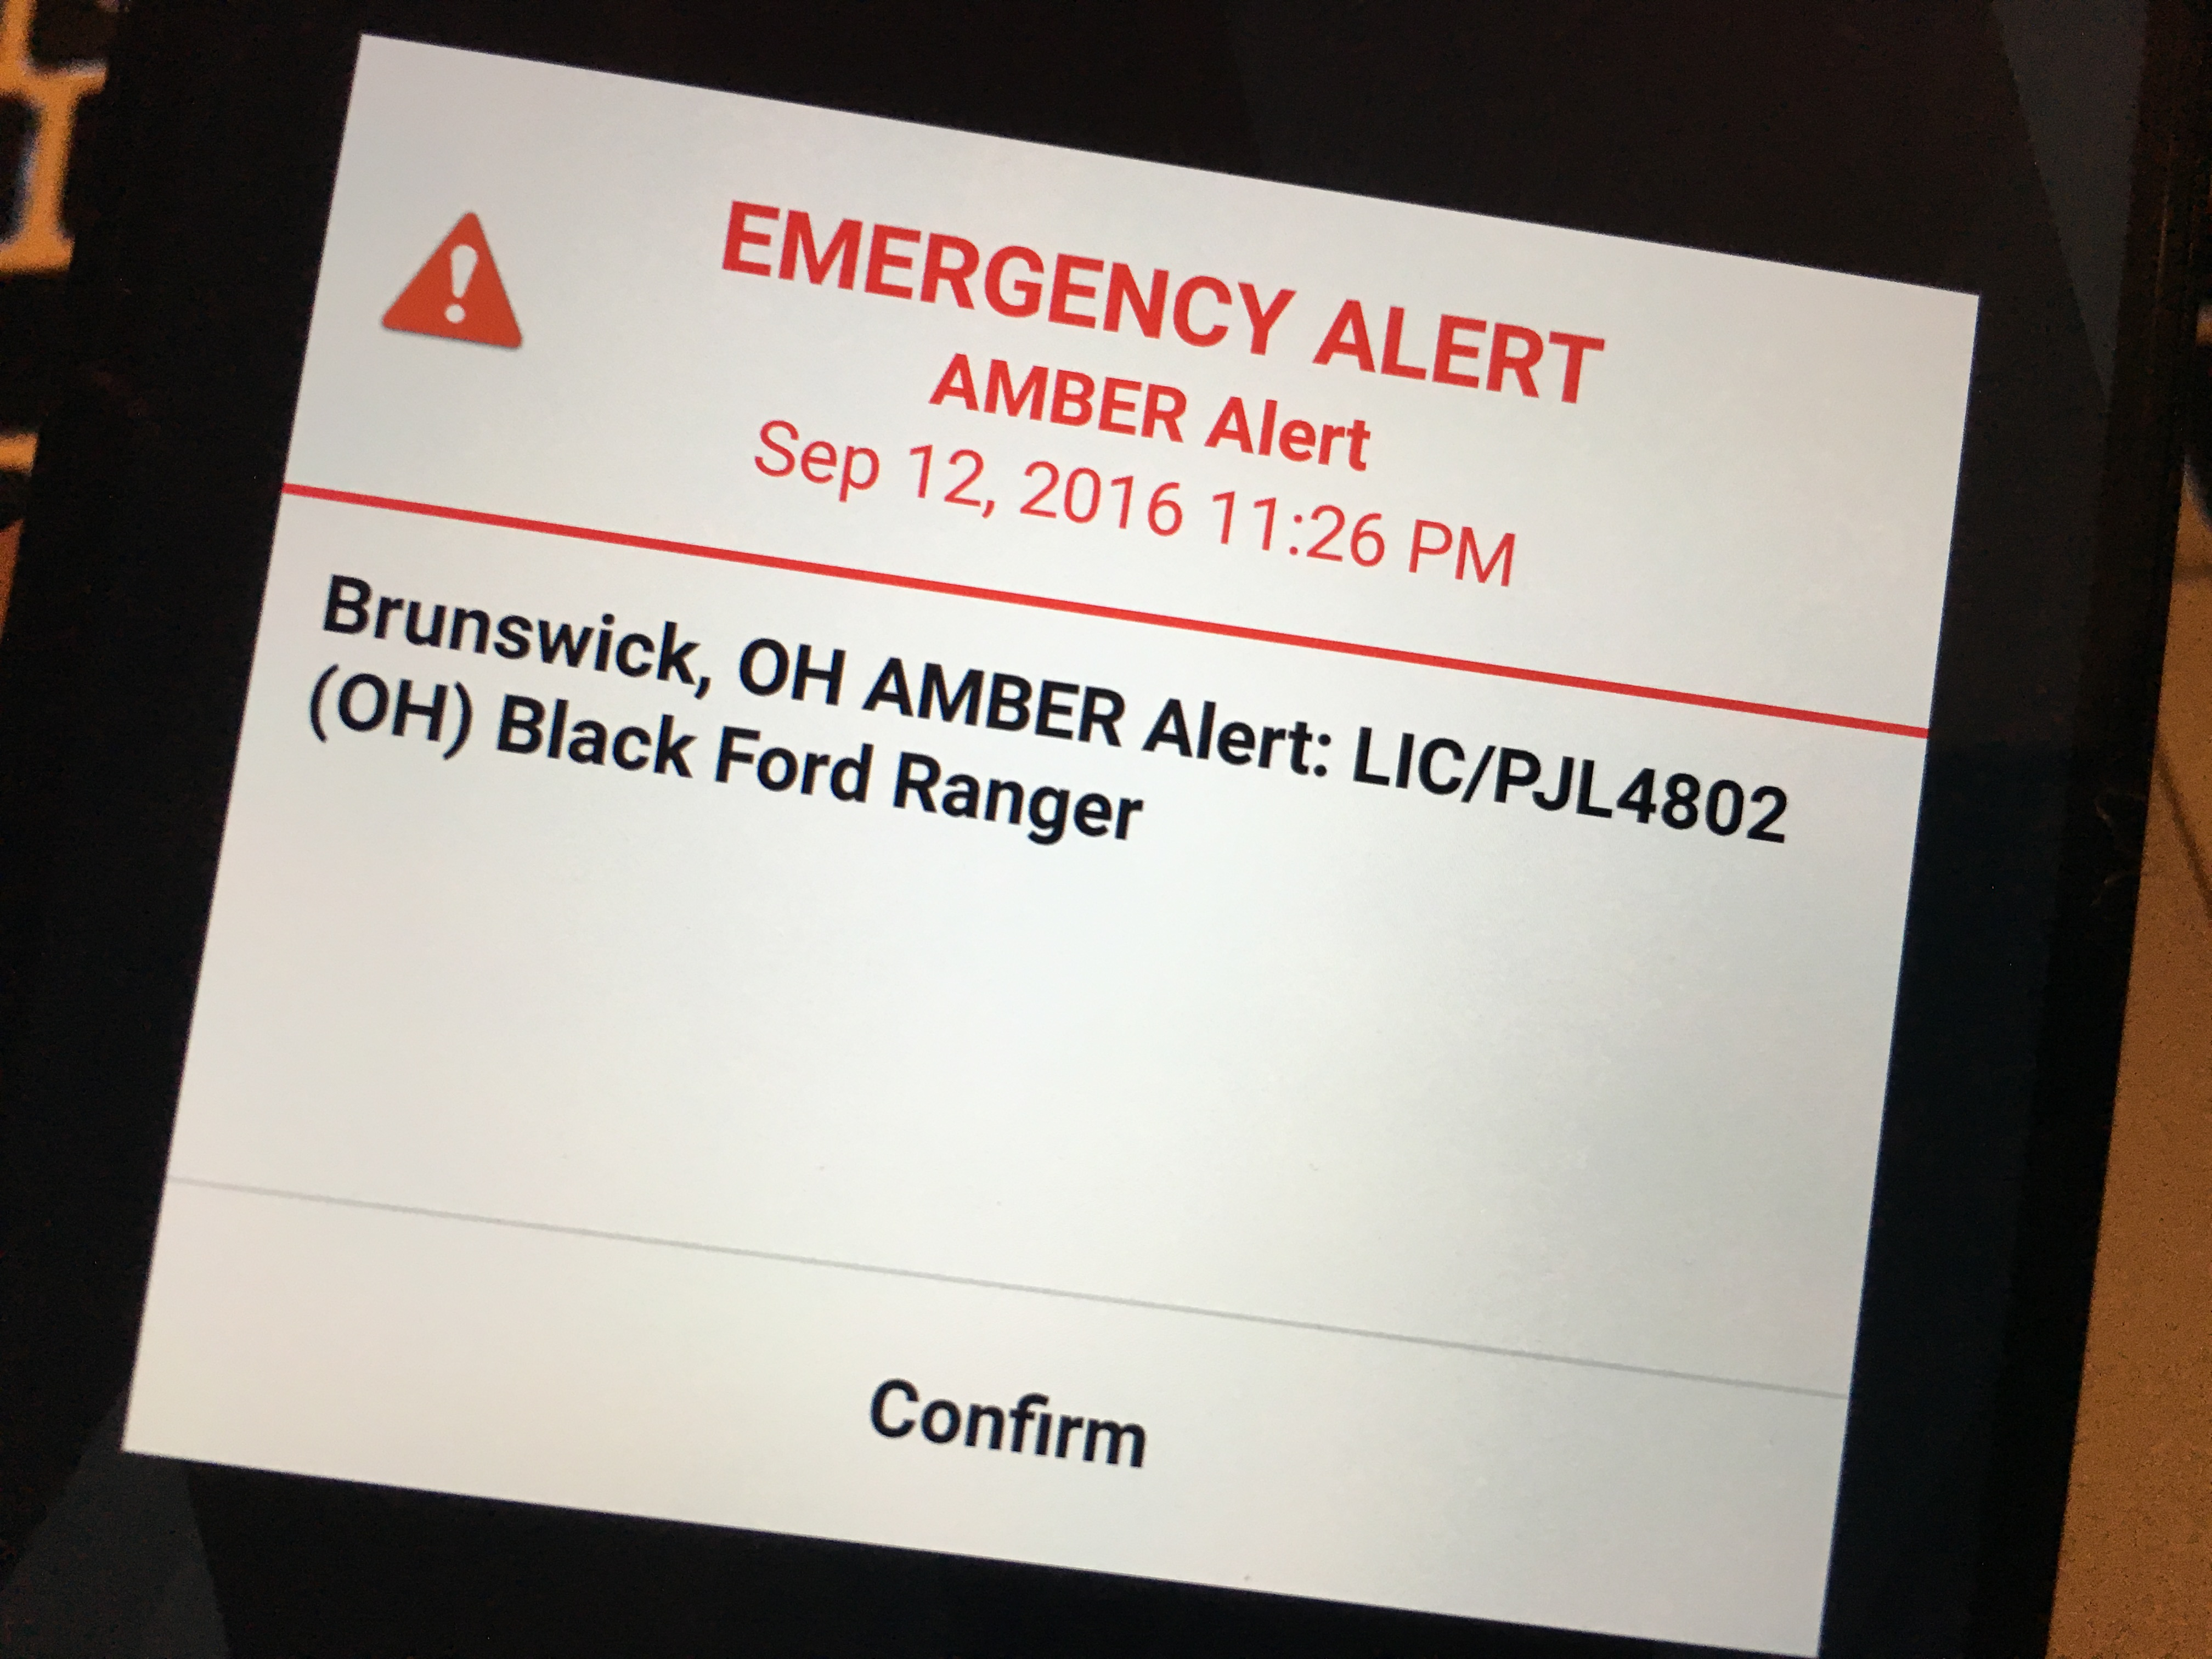 Sample Android amber alert.